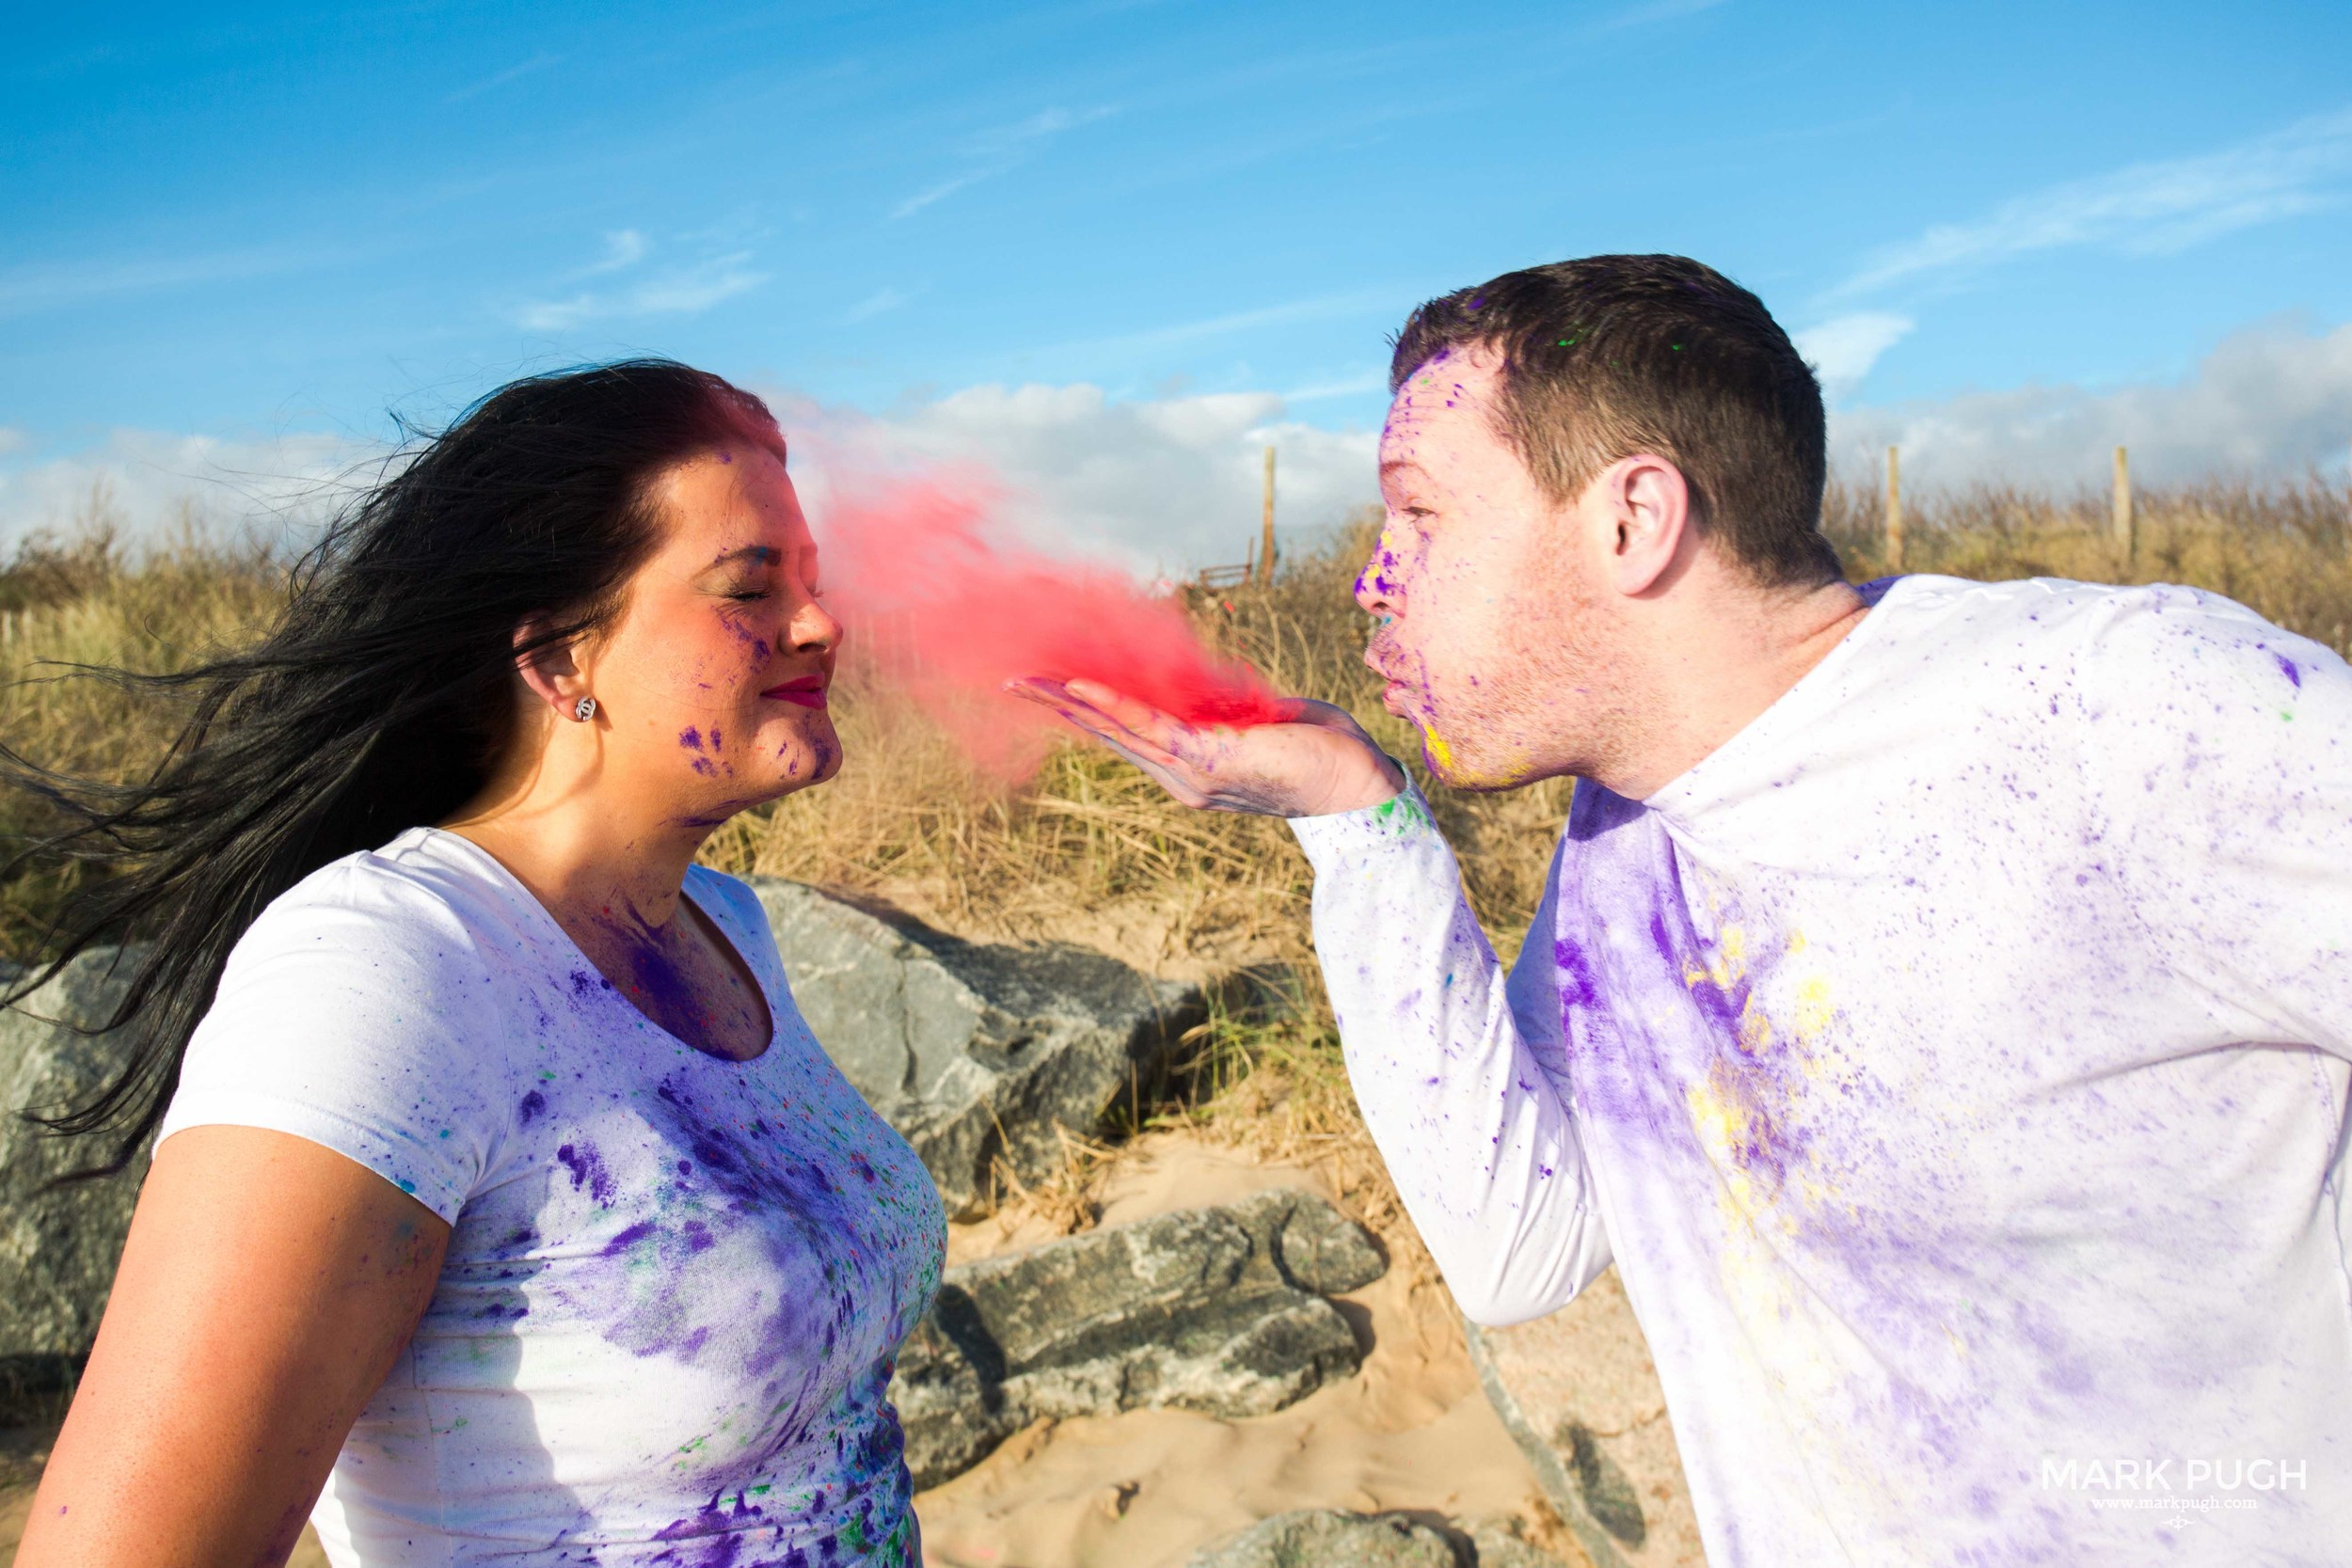 084 - Louise and Paul - preWED love session paint fun photography by www.markpugh.com.JPG